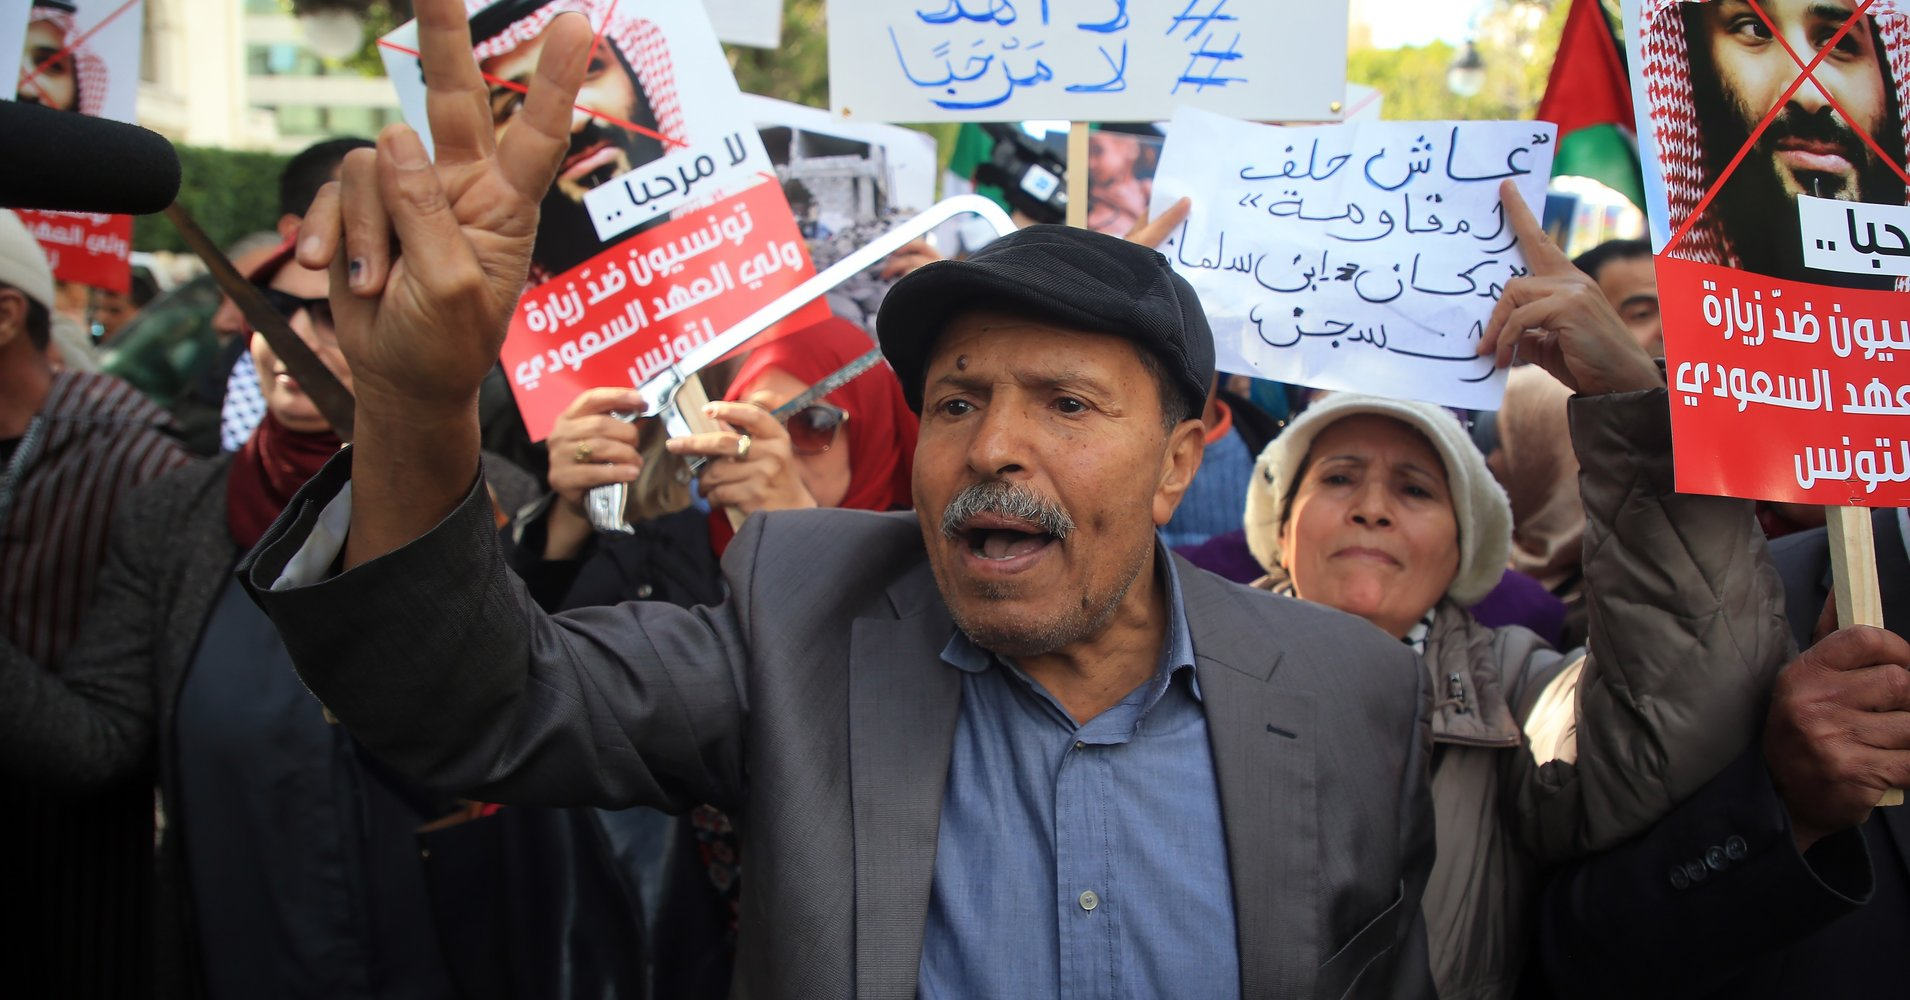 Hundreds Protest In Tunisia Against Saudi Crown Prince's Visit